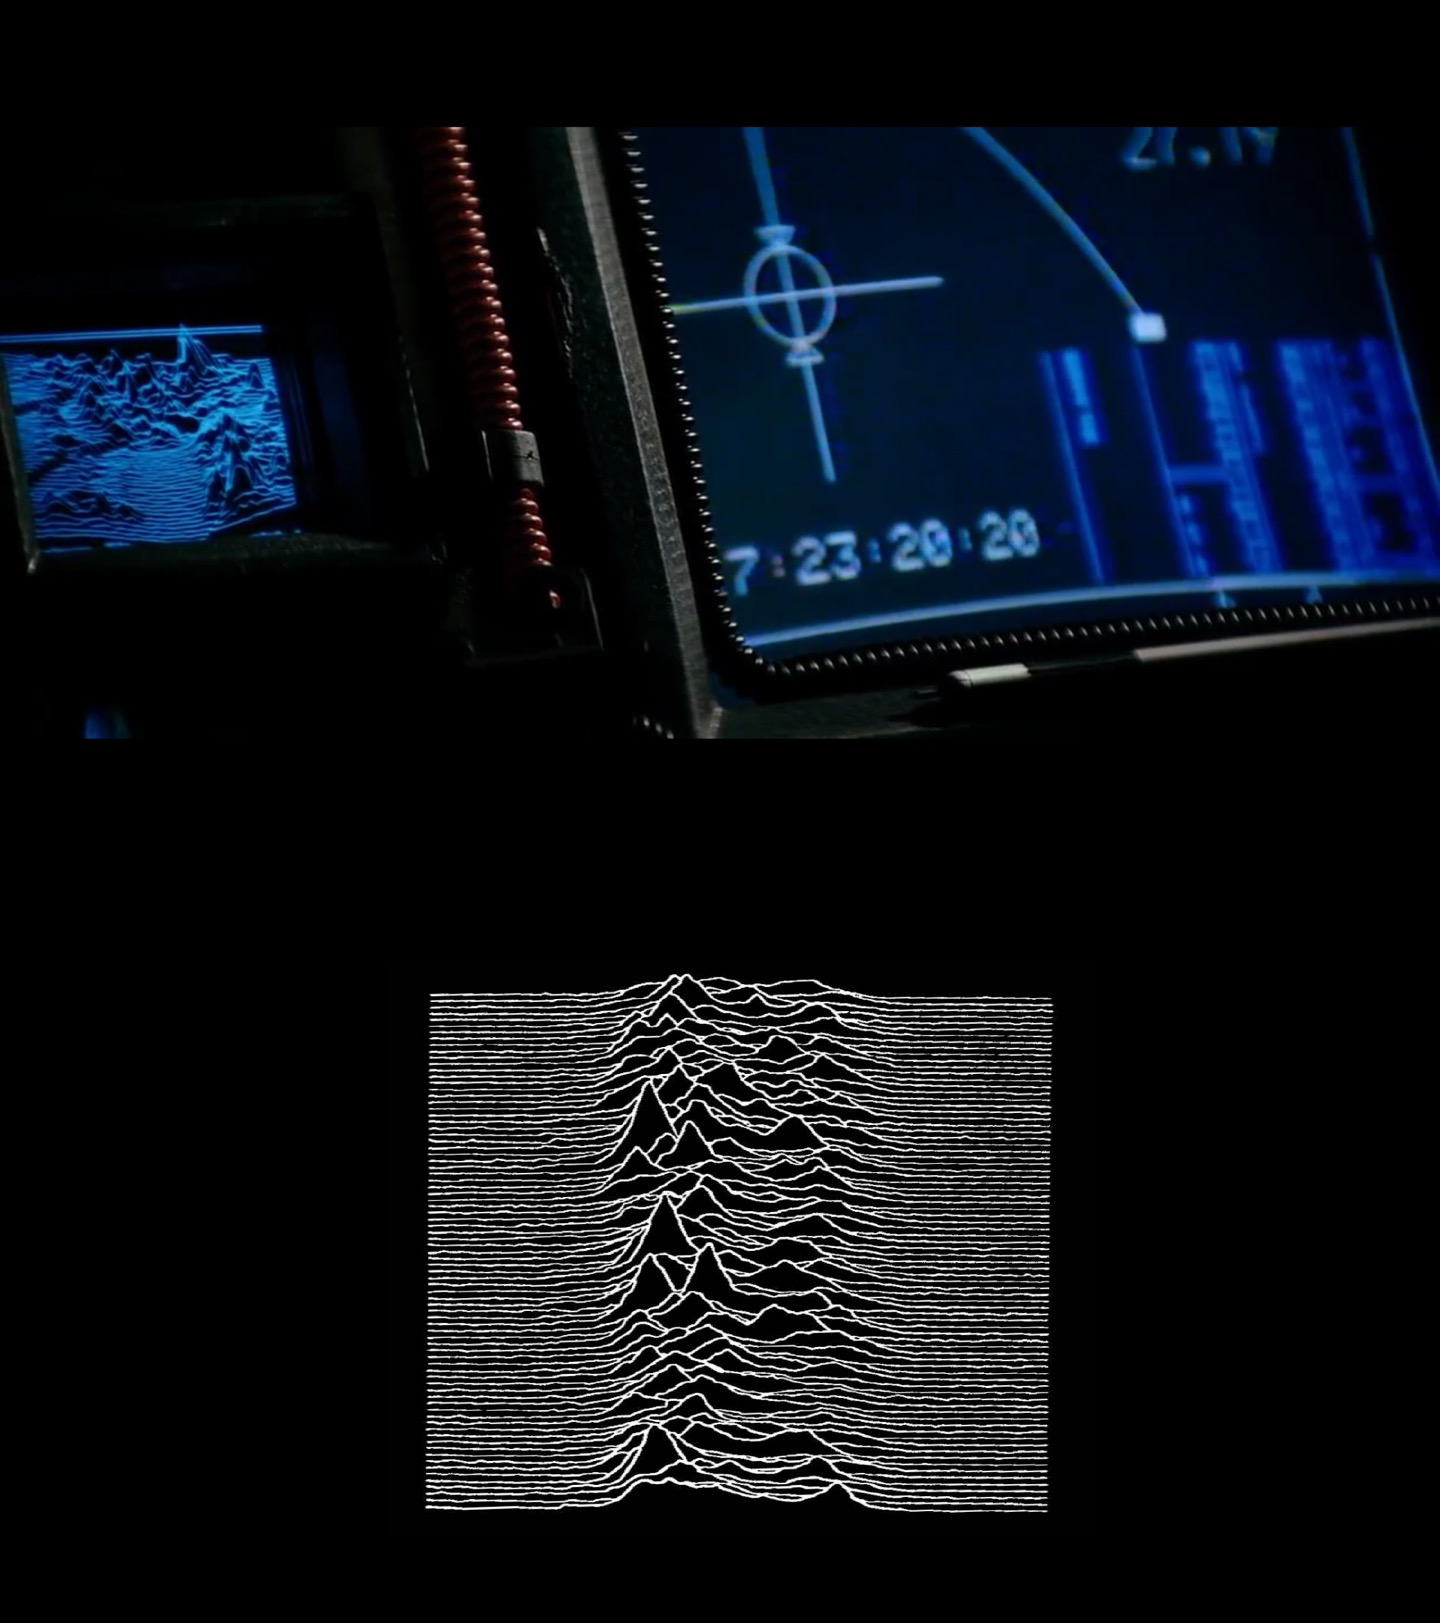 Screenshot from Aliens, contrasted with the classic Joy Division album cover